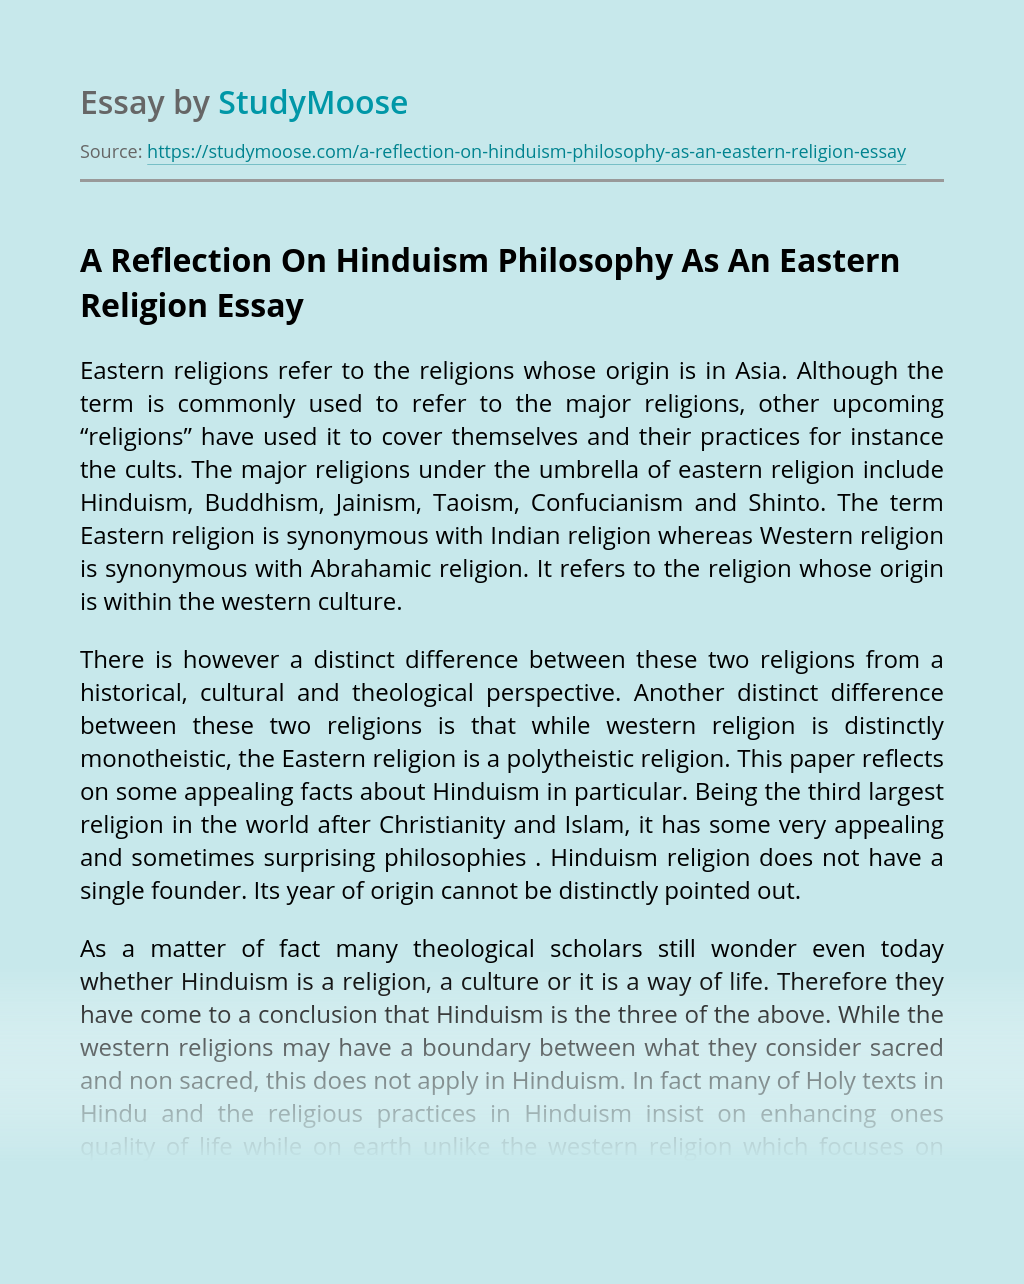 A Reflection On Hinduism Philosophy As An Eastern Religion